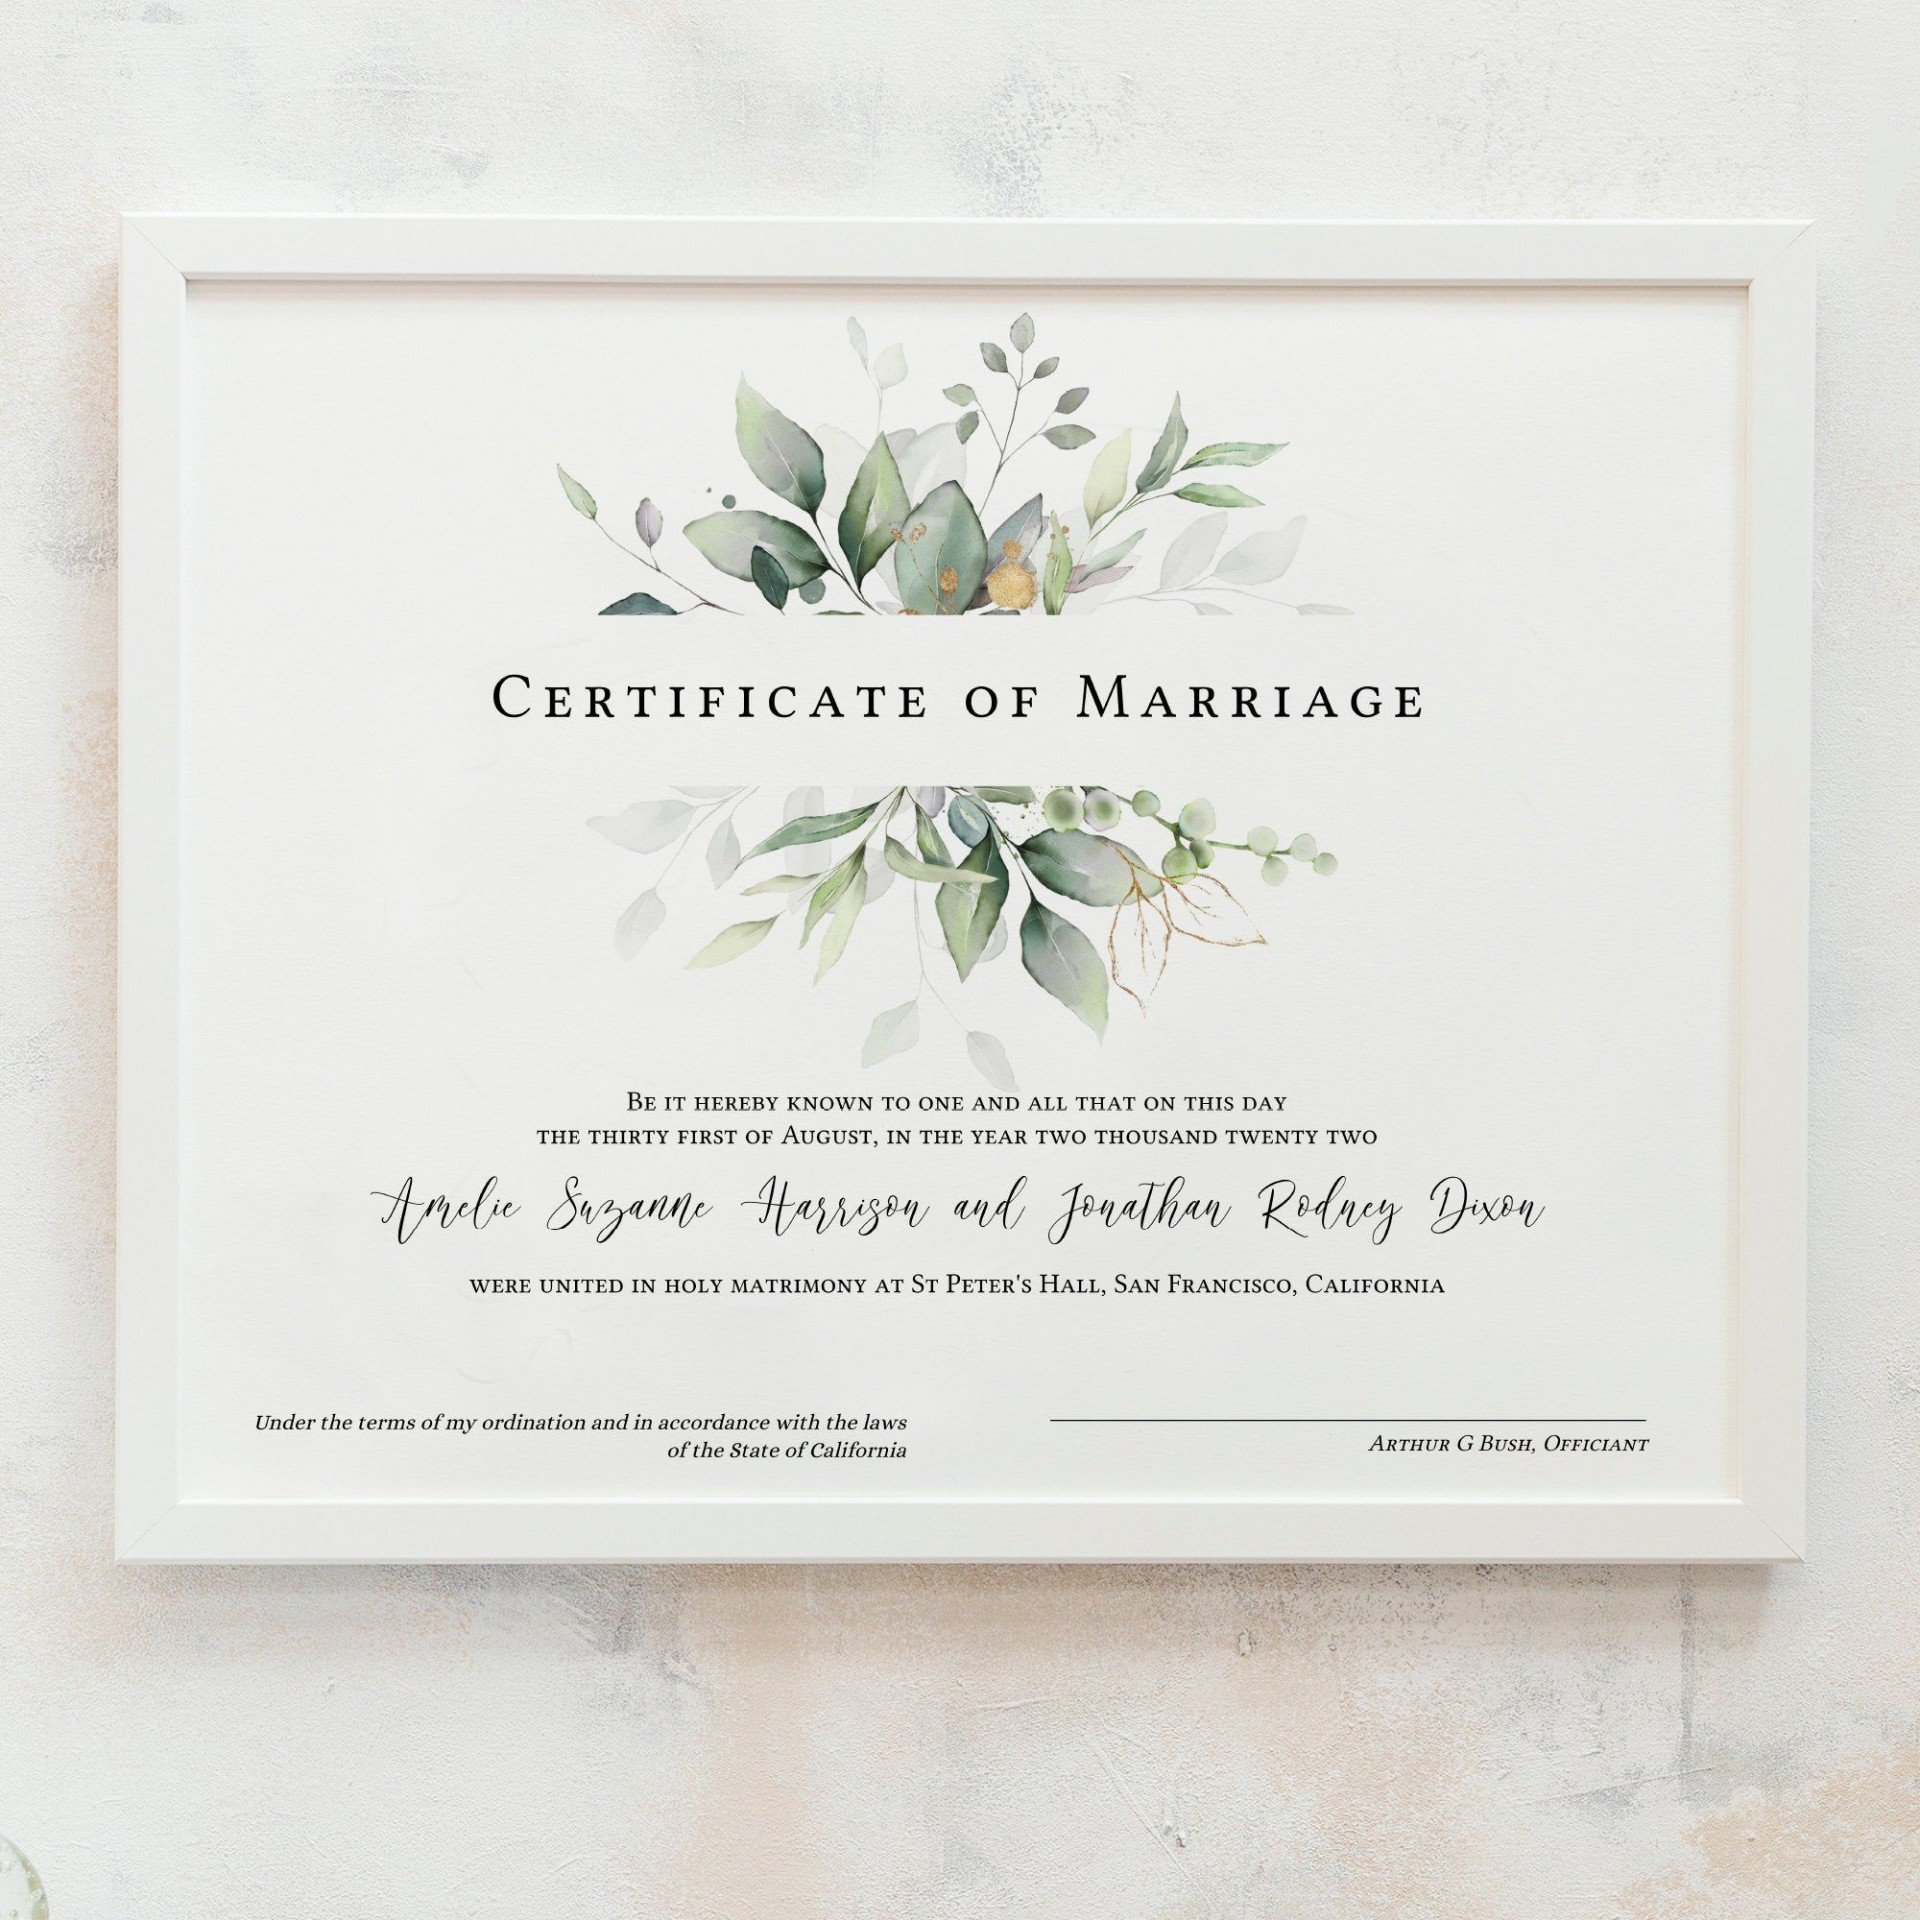 009 Rare Free Marriage Certificate Template High Def  Renewal Translation From Spanish To English Wedding Download1920